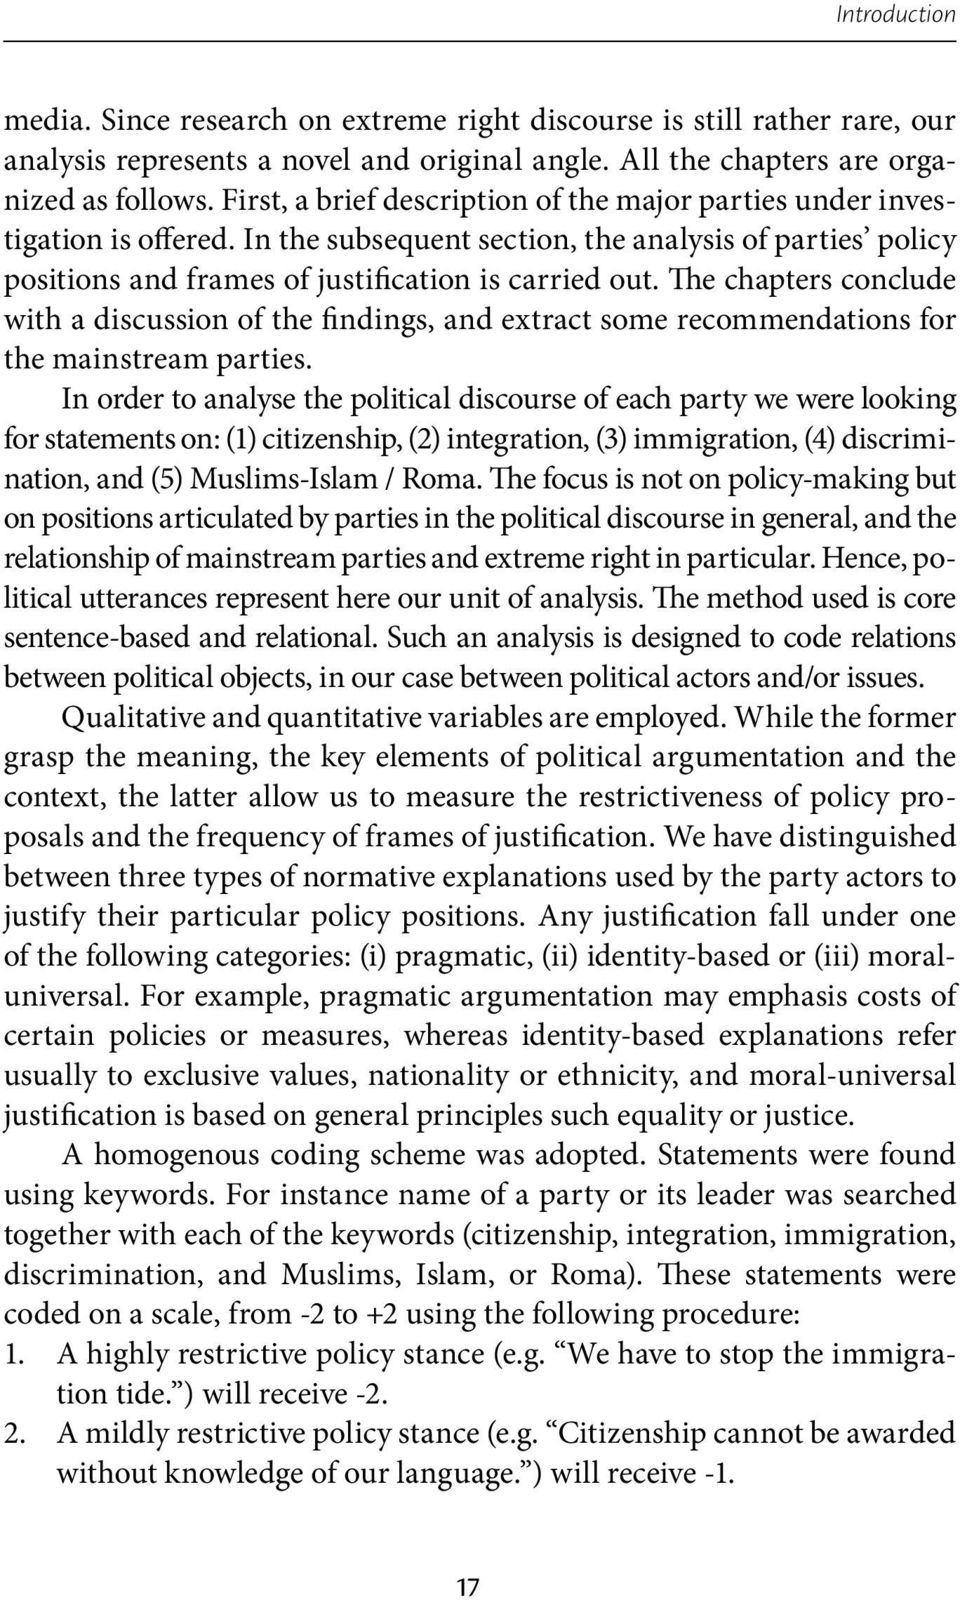 The chapters conclude with a discussion of the findings, and extract some recommendations for the mainstream parties.